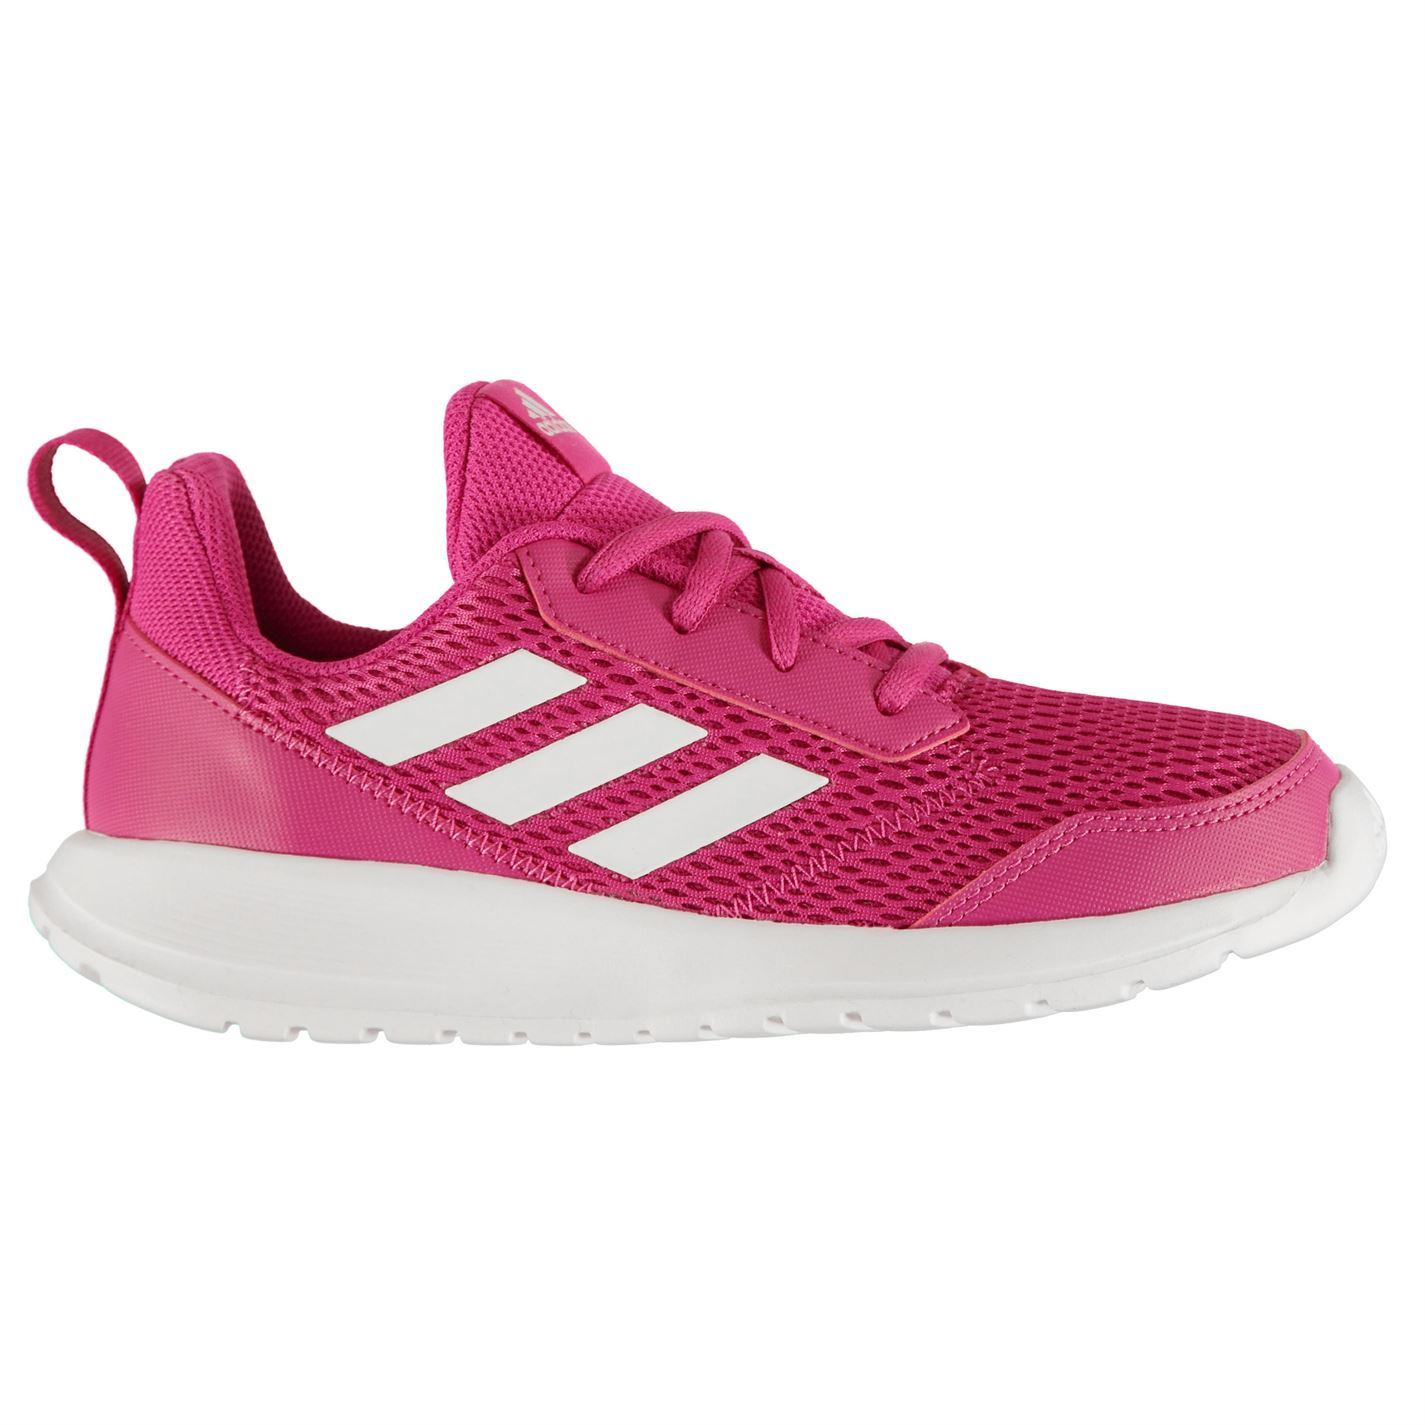 Details about adidas Alta Run Junior Girls Trainers PinkWhite Shoes Footwear